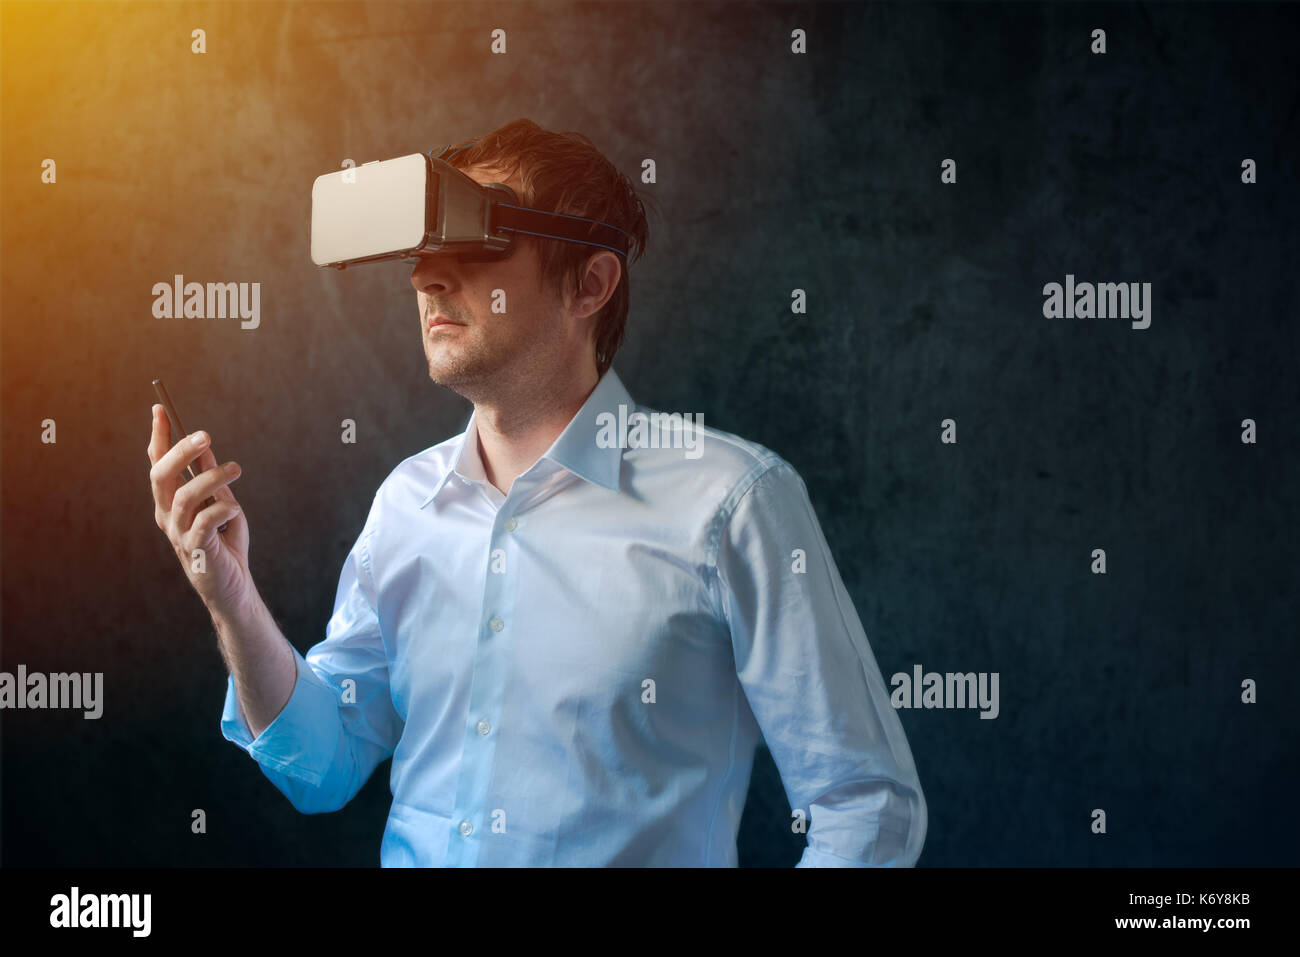 Businessman with VR goggles headset exploring virtual reality immersive technology content - Stock Image